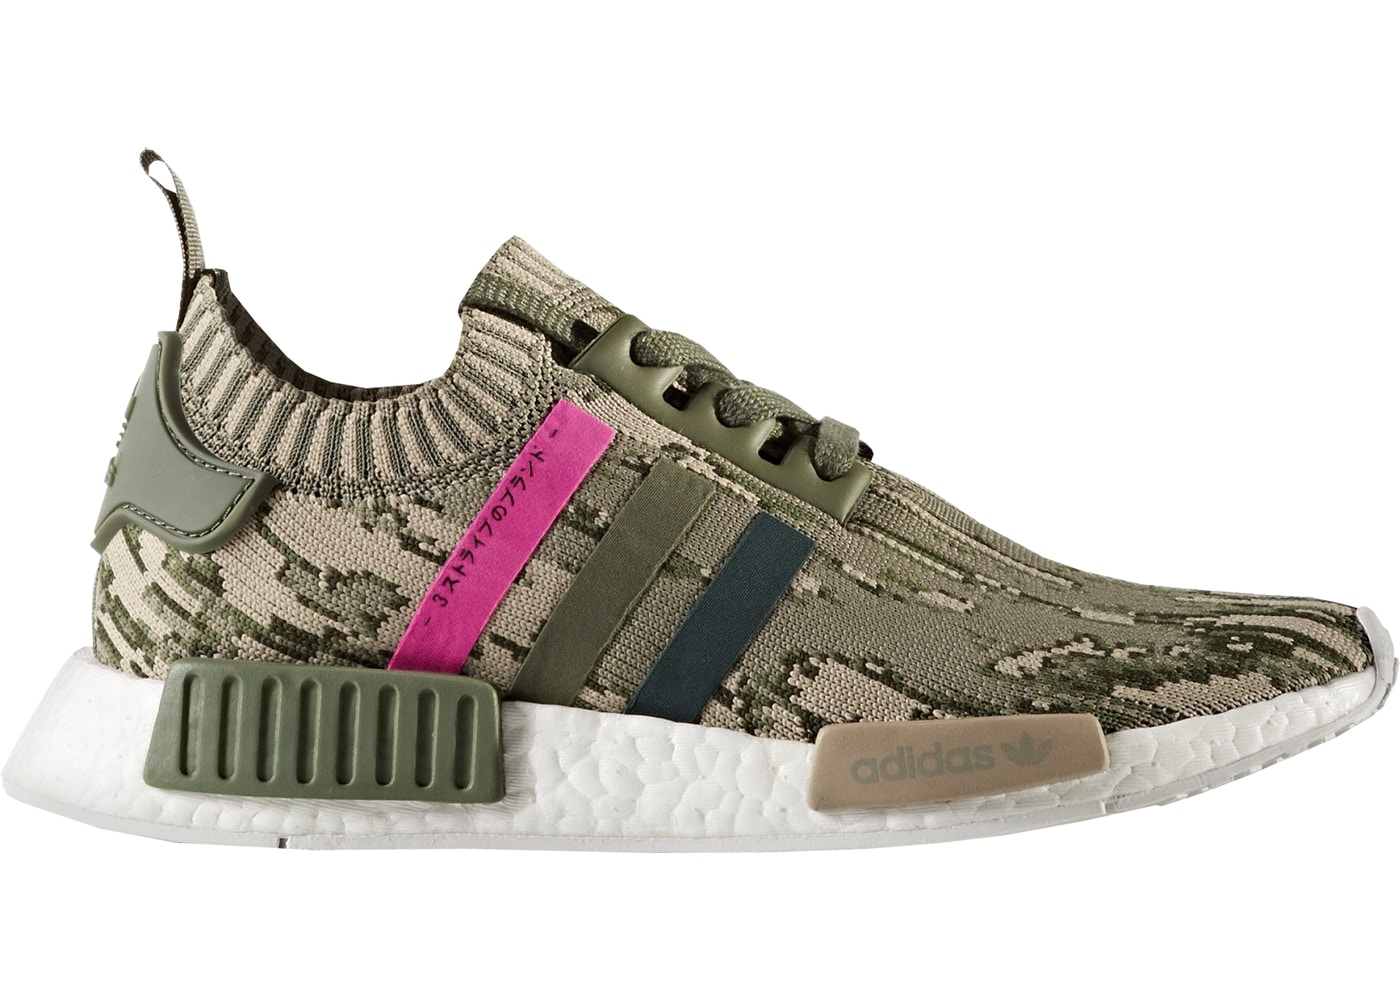 d0210c216 adidas NMD R1 Glitch Camo St Major (W) - BY9864